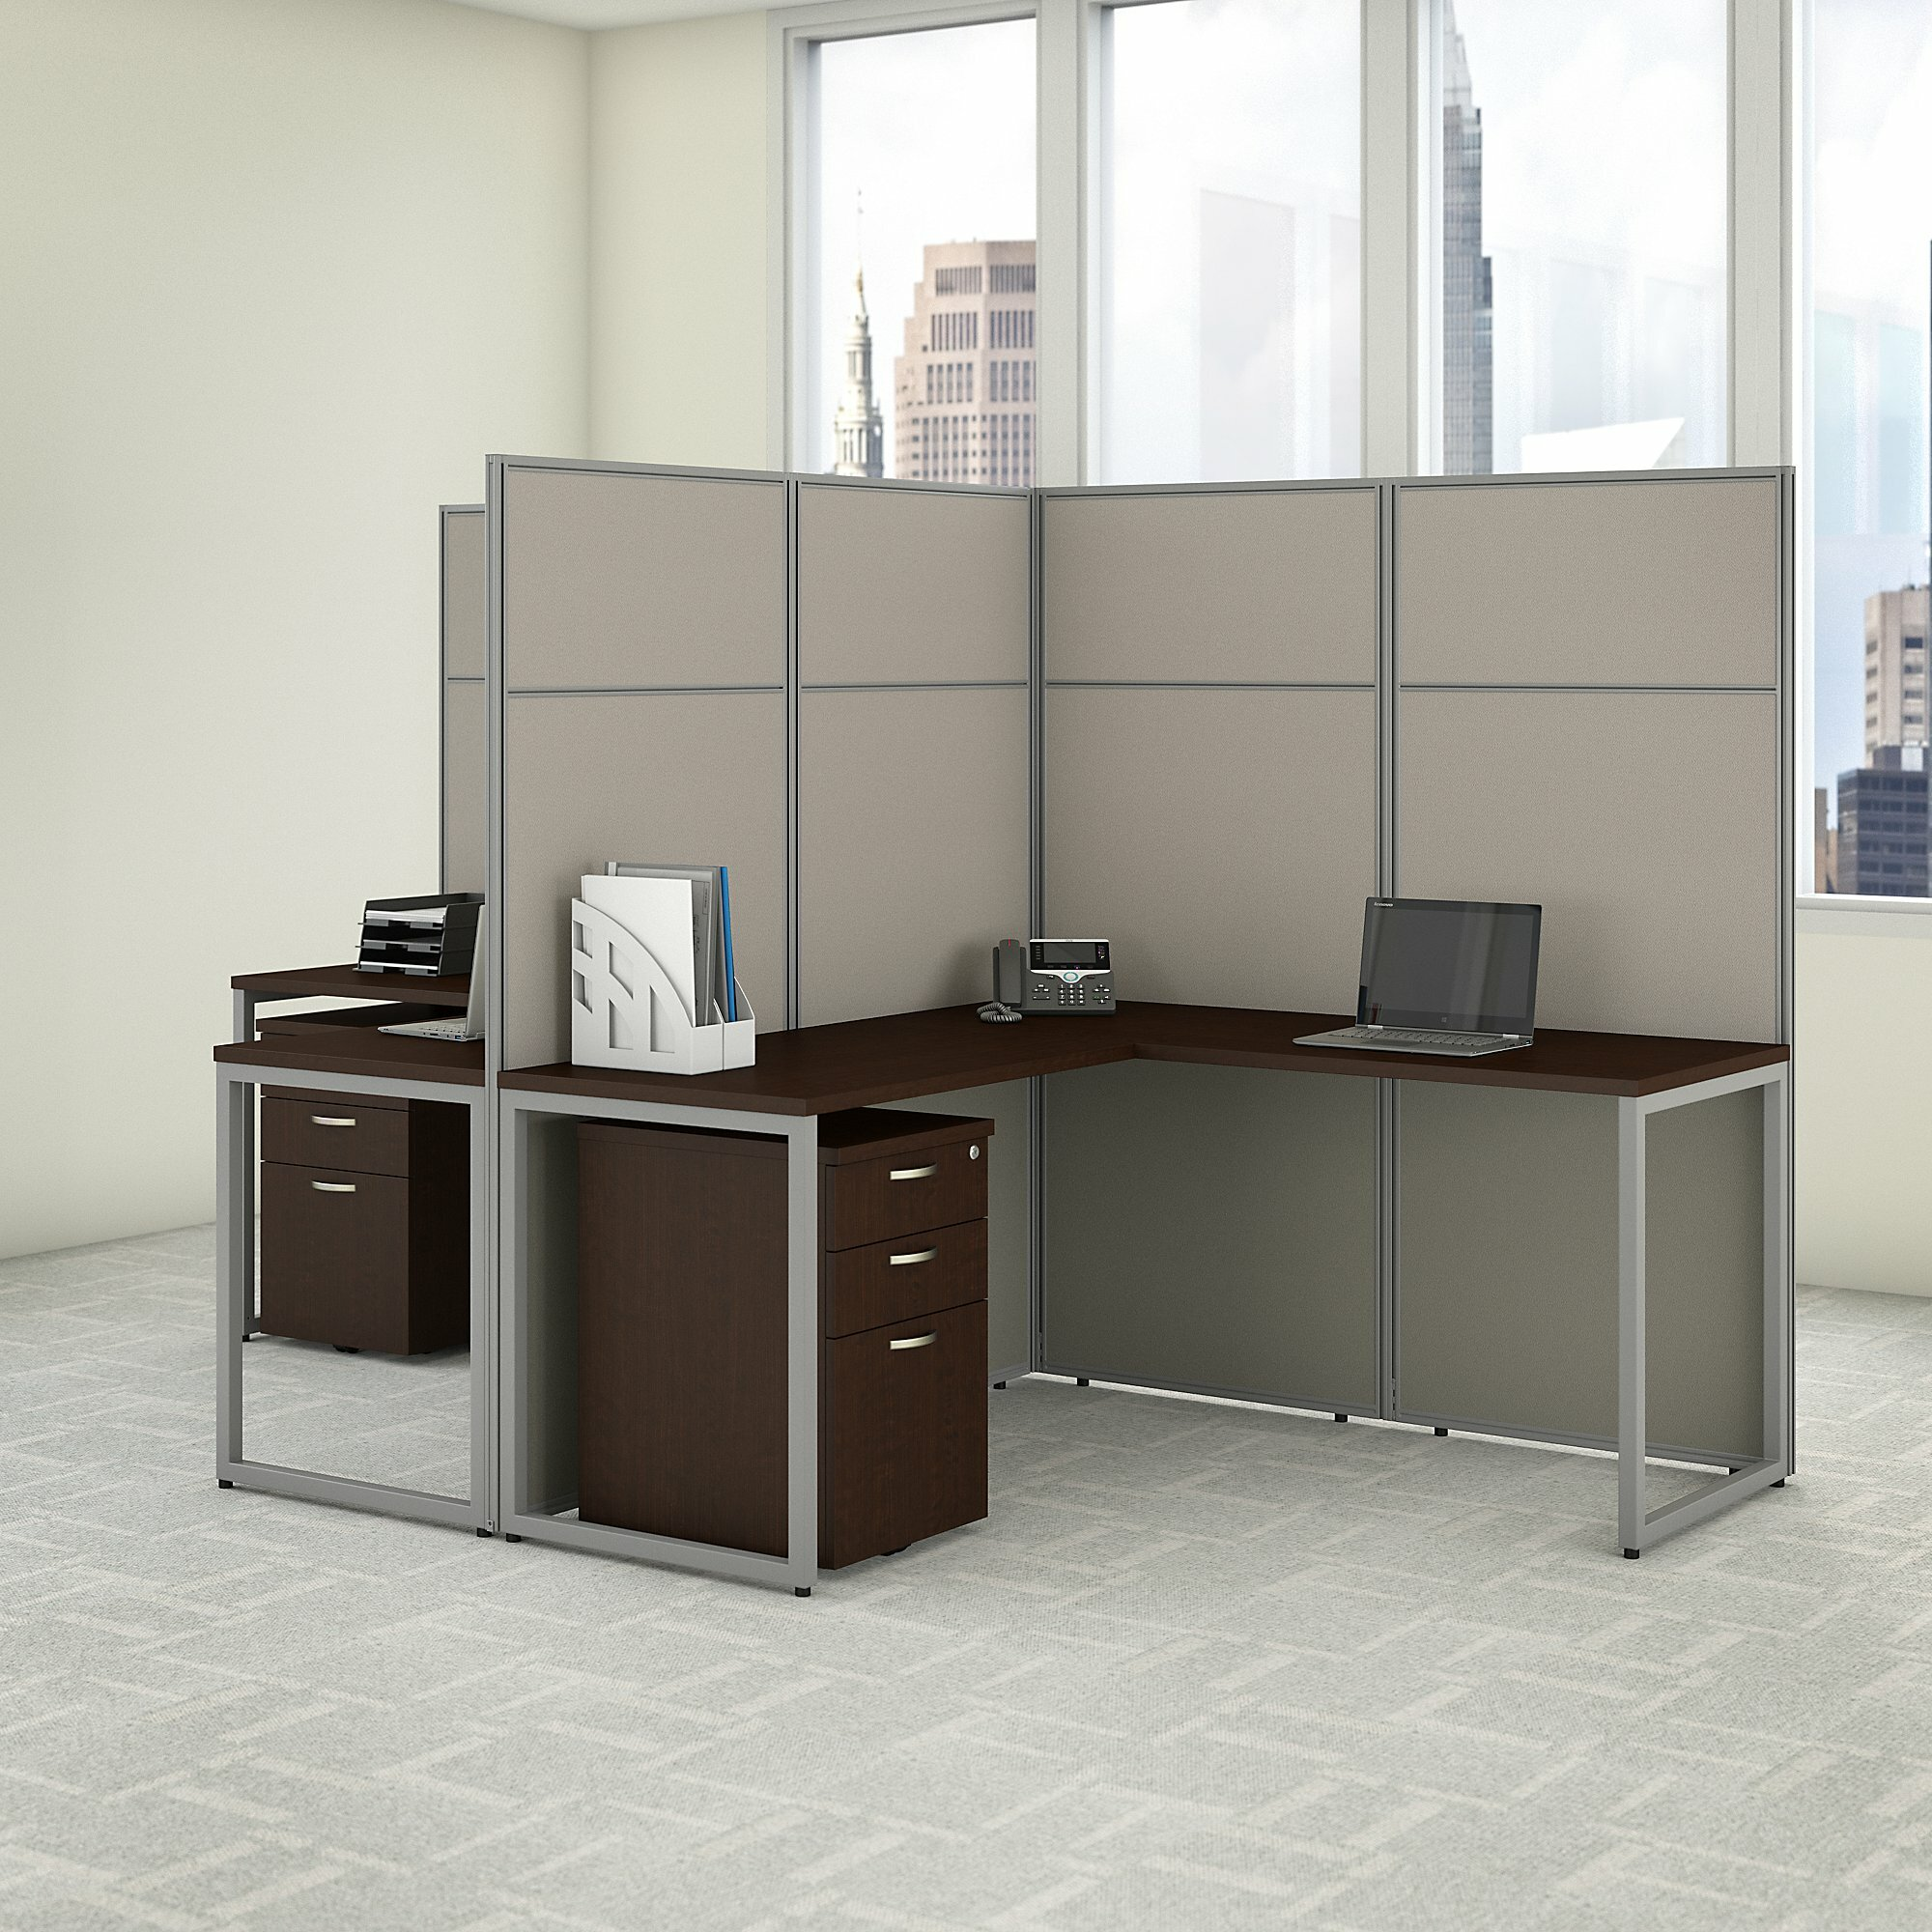 Easy Office 2 Person L Shaped Desk